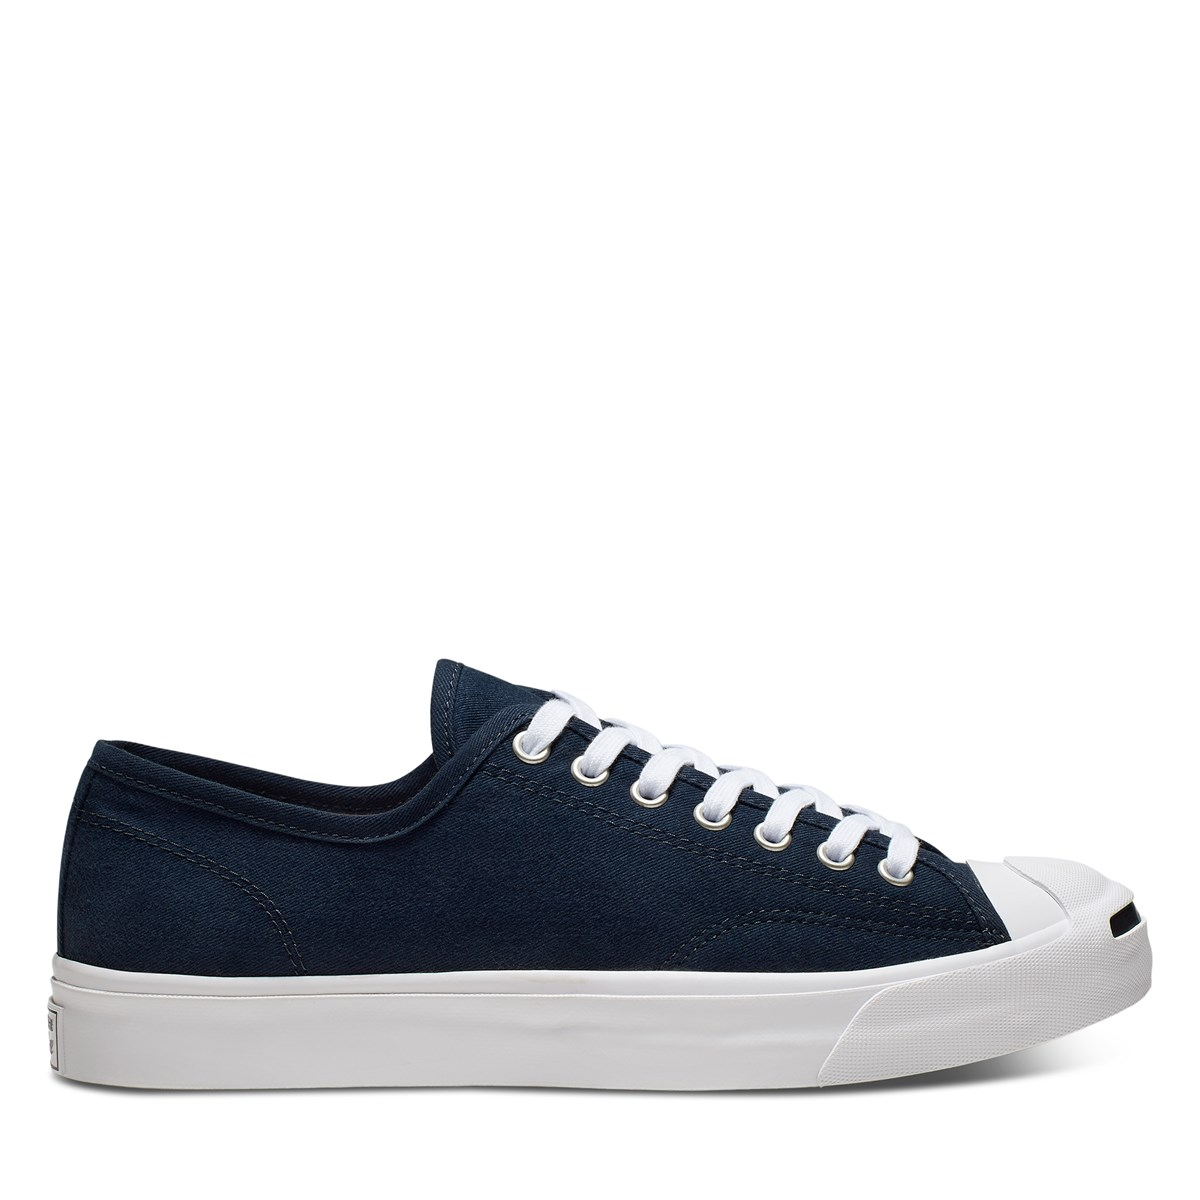 Men's Jack Purcell Ox Sneakers in Blue